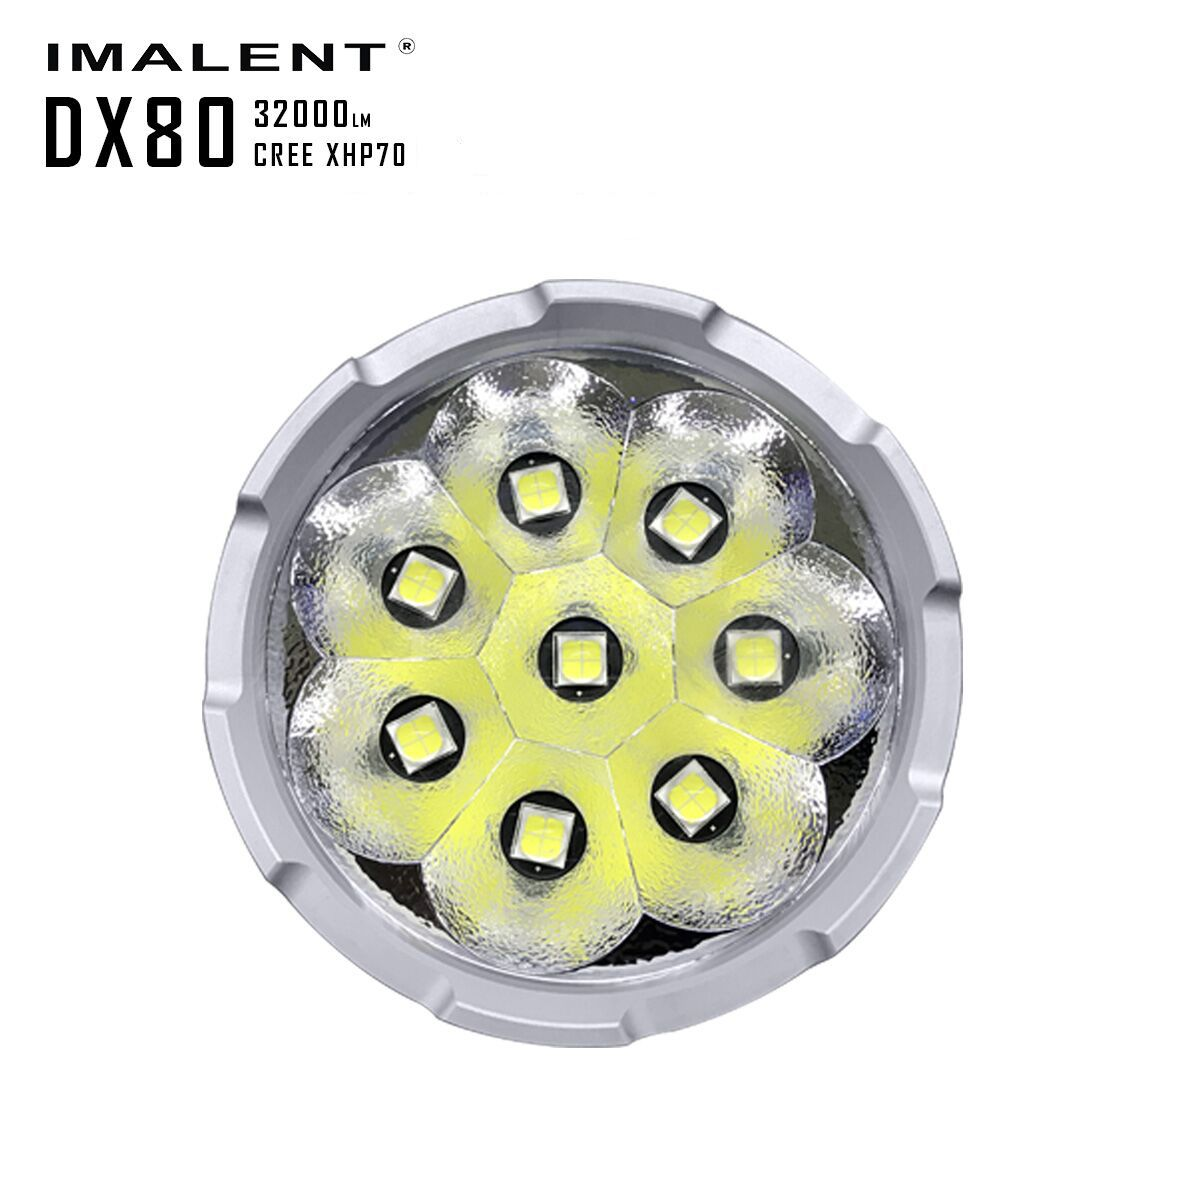 IMALENT DX80 32000LM 8 LED CREE